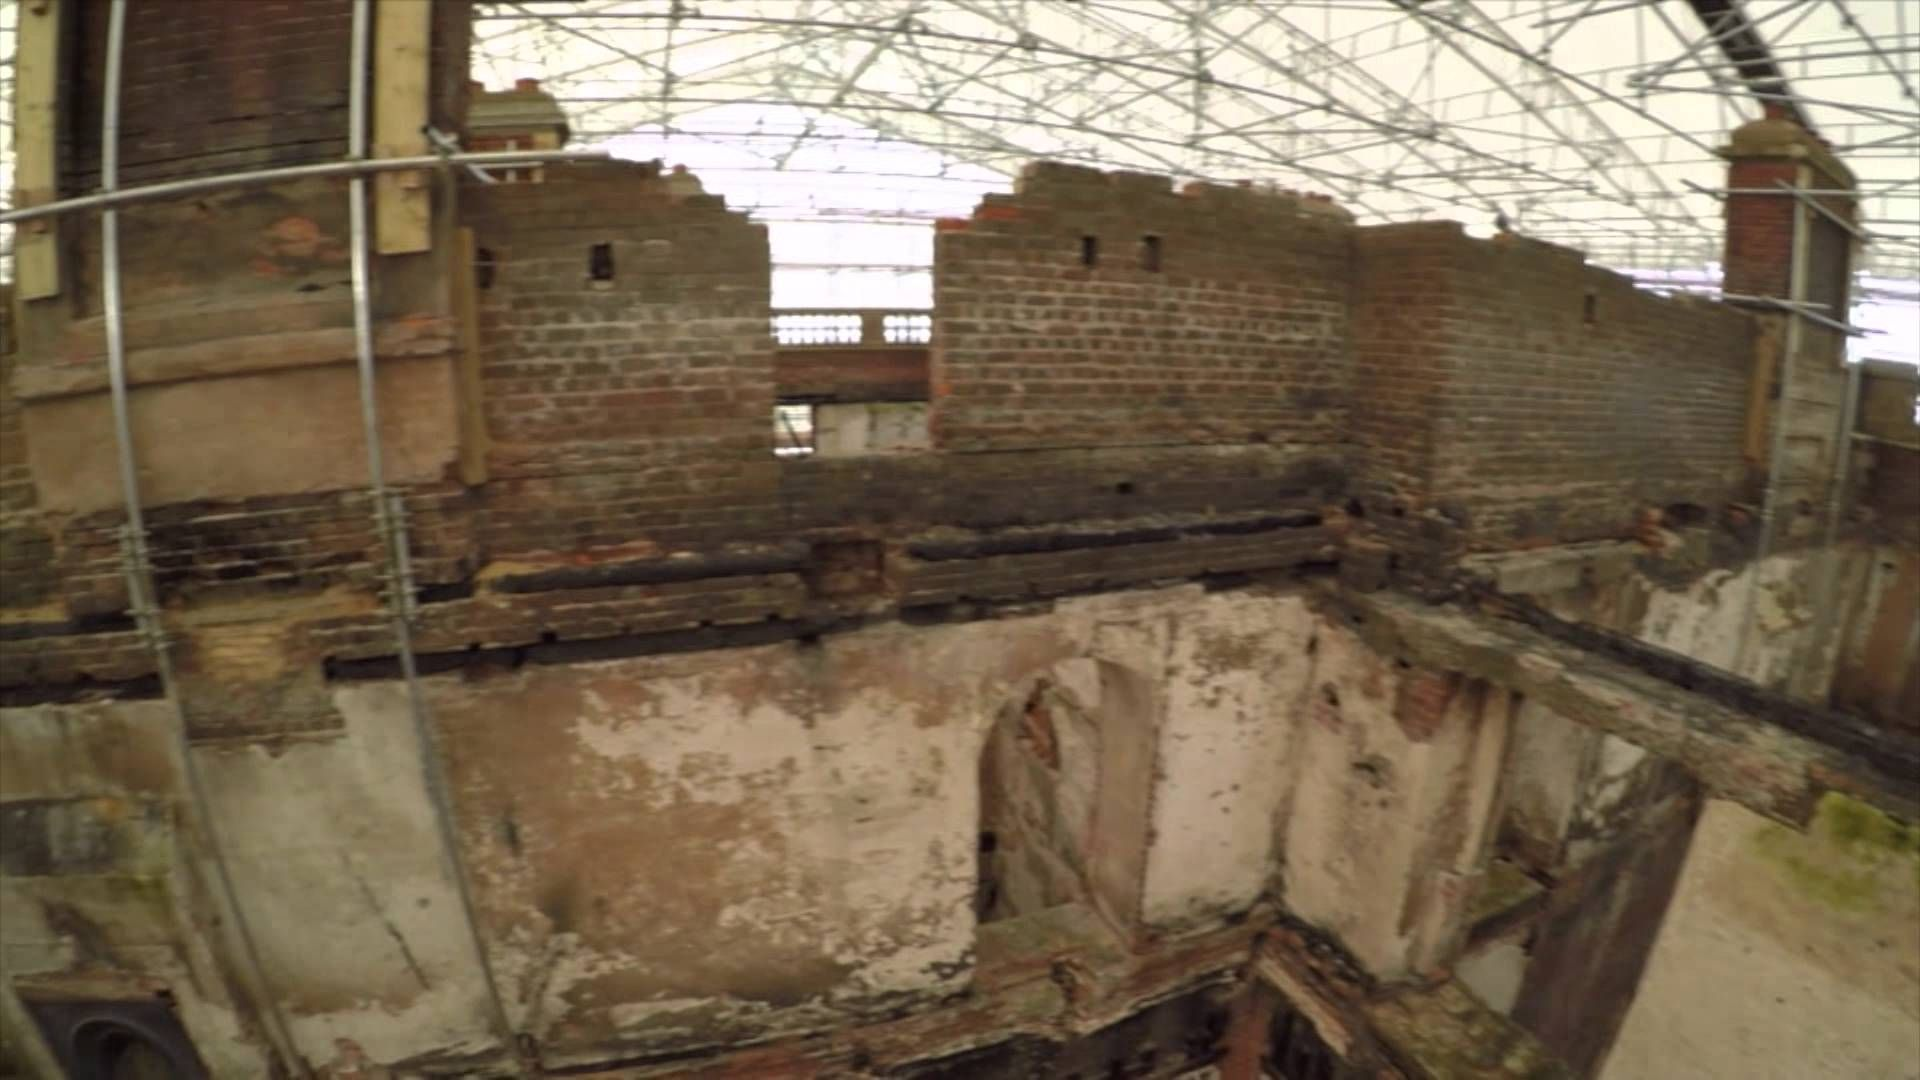 Clandon - a close look inside the Marble Hall after the fire